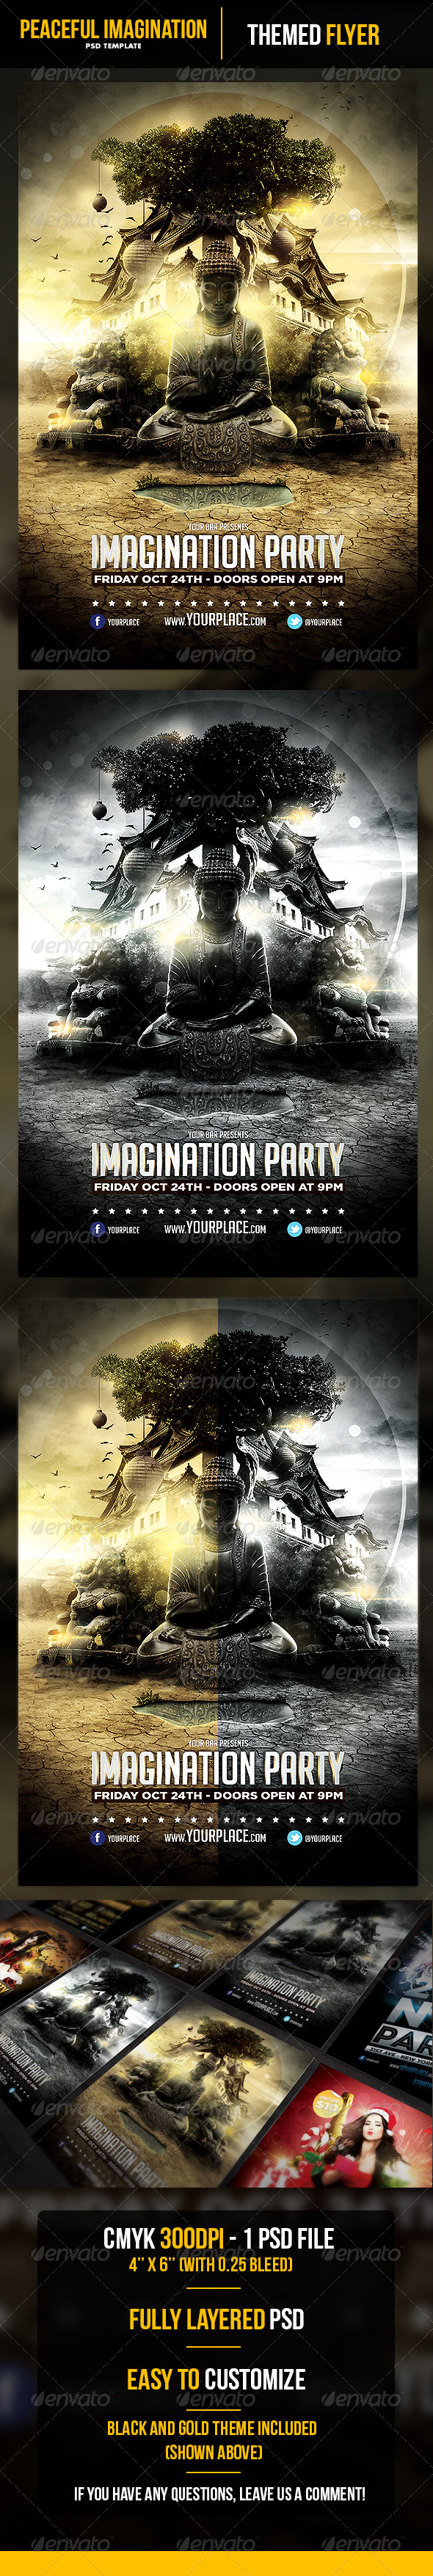 Peaceful Imagination Flyer Template - Flyers Print Templates